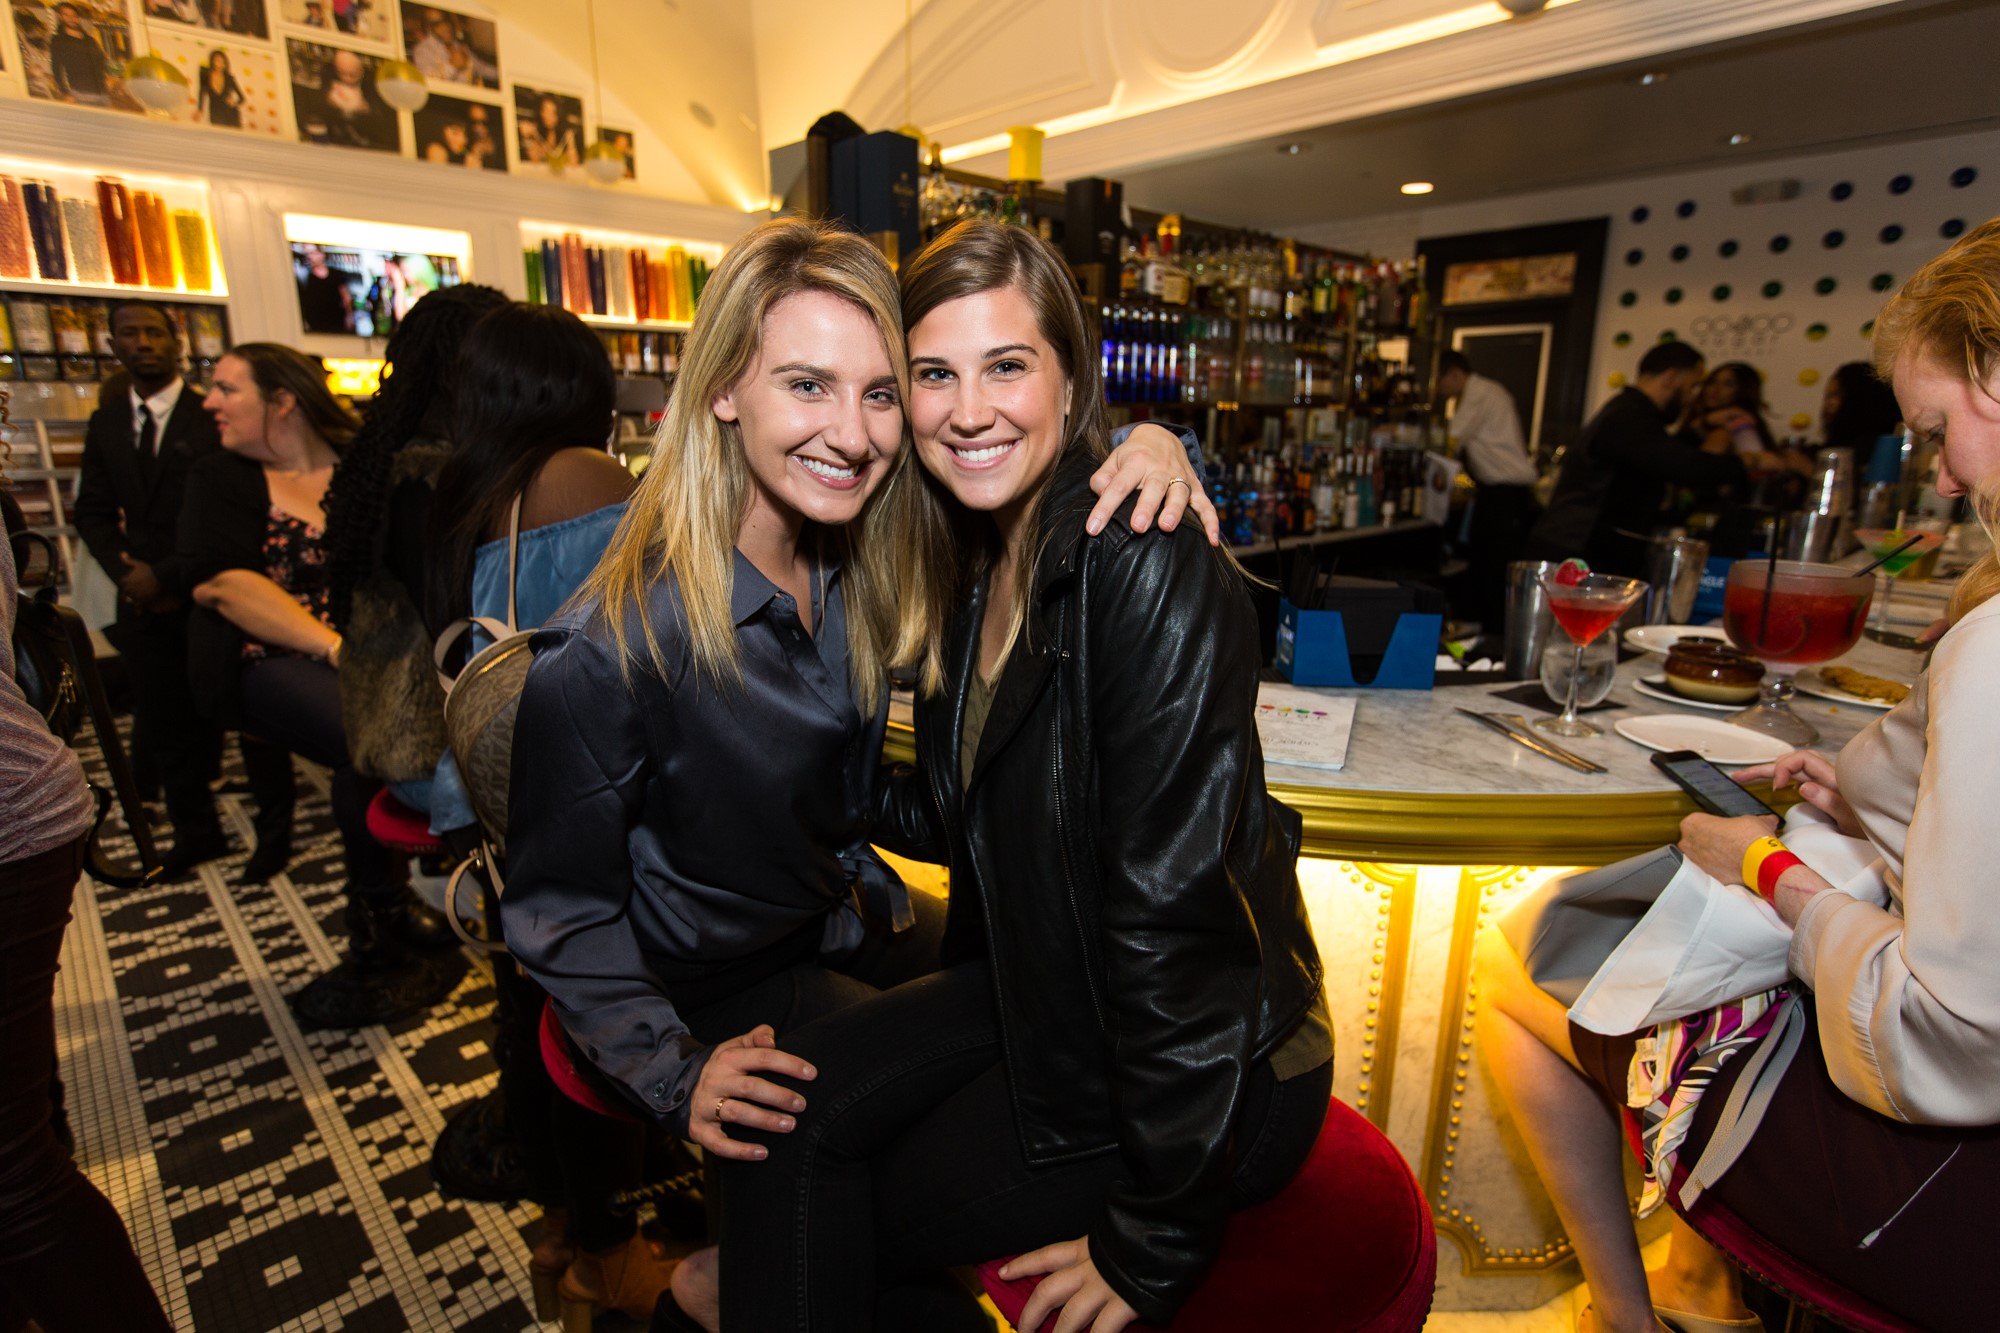 Claudia Giles and Cori Stroebel attended the event. (Image: John Robinson)<p></p>